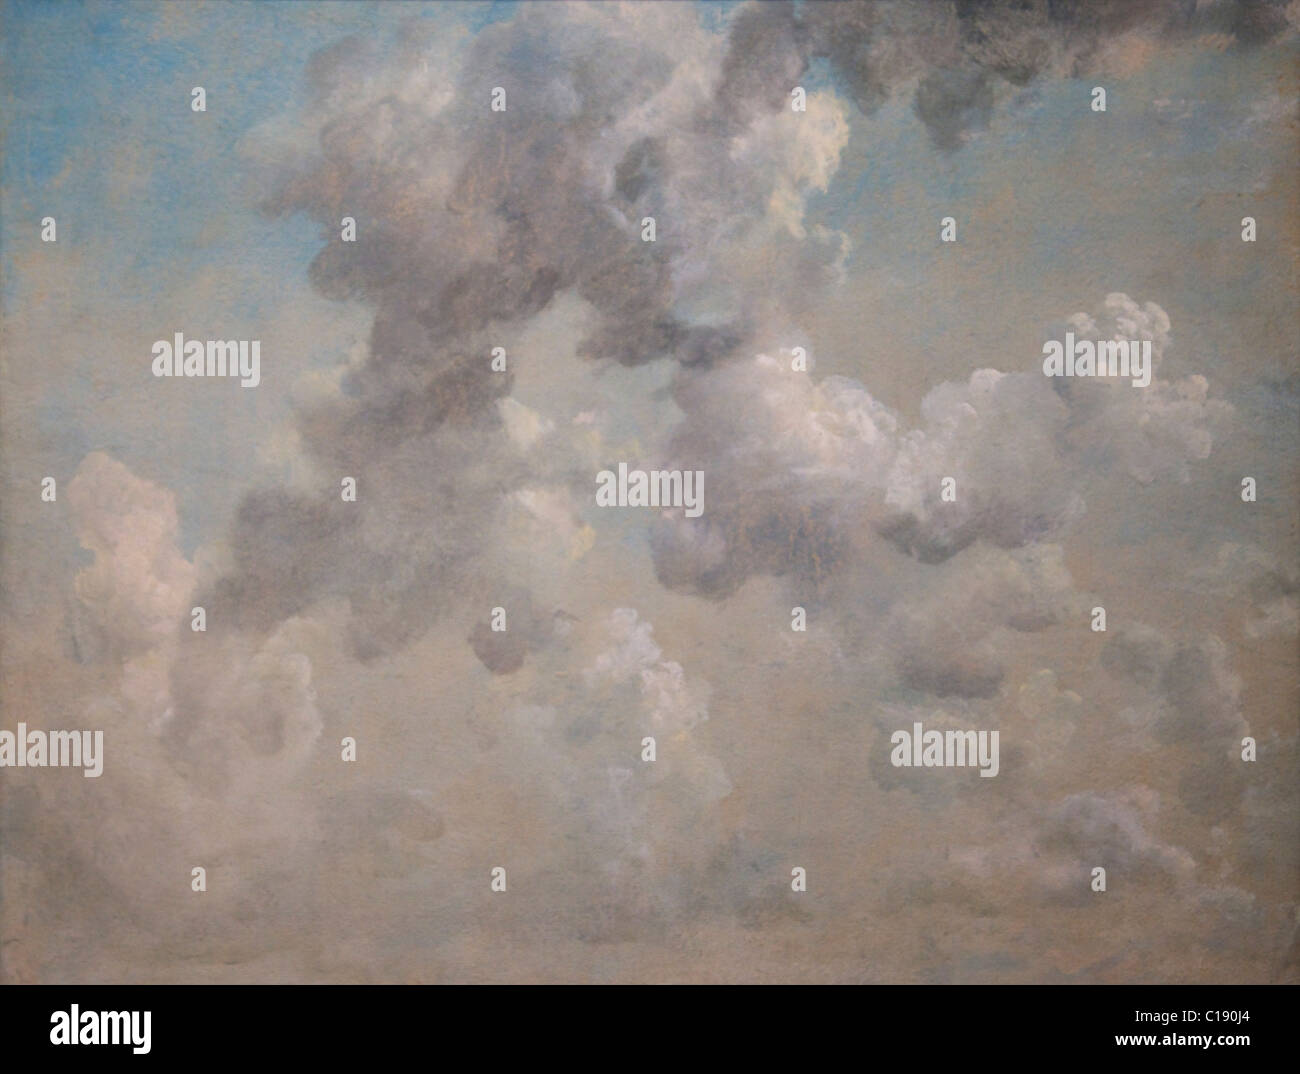 Study of Clouds, by John Constable, 1822, Ashmolean Museum of Art, University of Oxford, Oxfordshire, England, UK - Stock Image